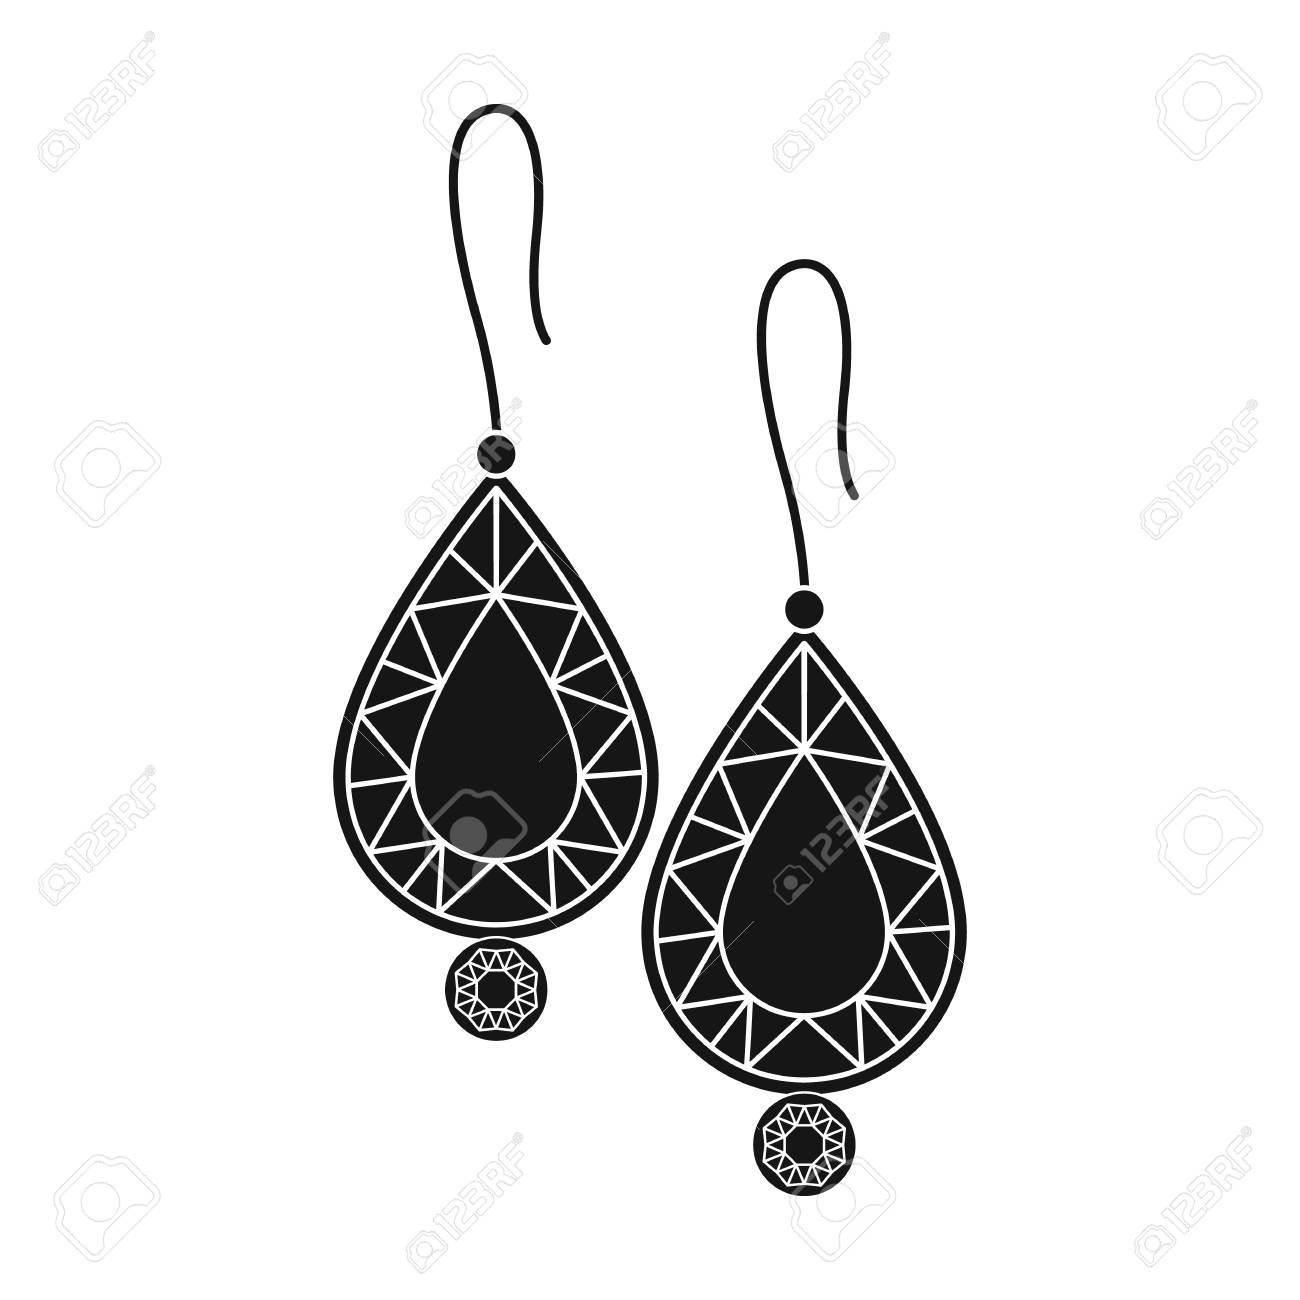 Earrings with gems icon in black style isolated on white background.